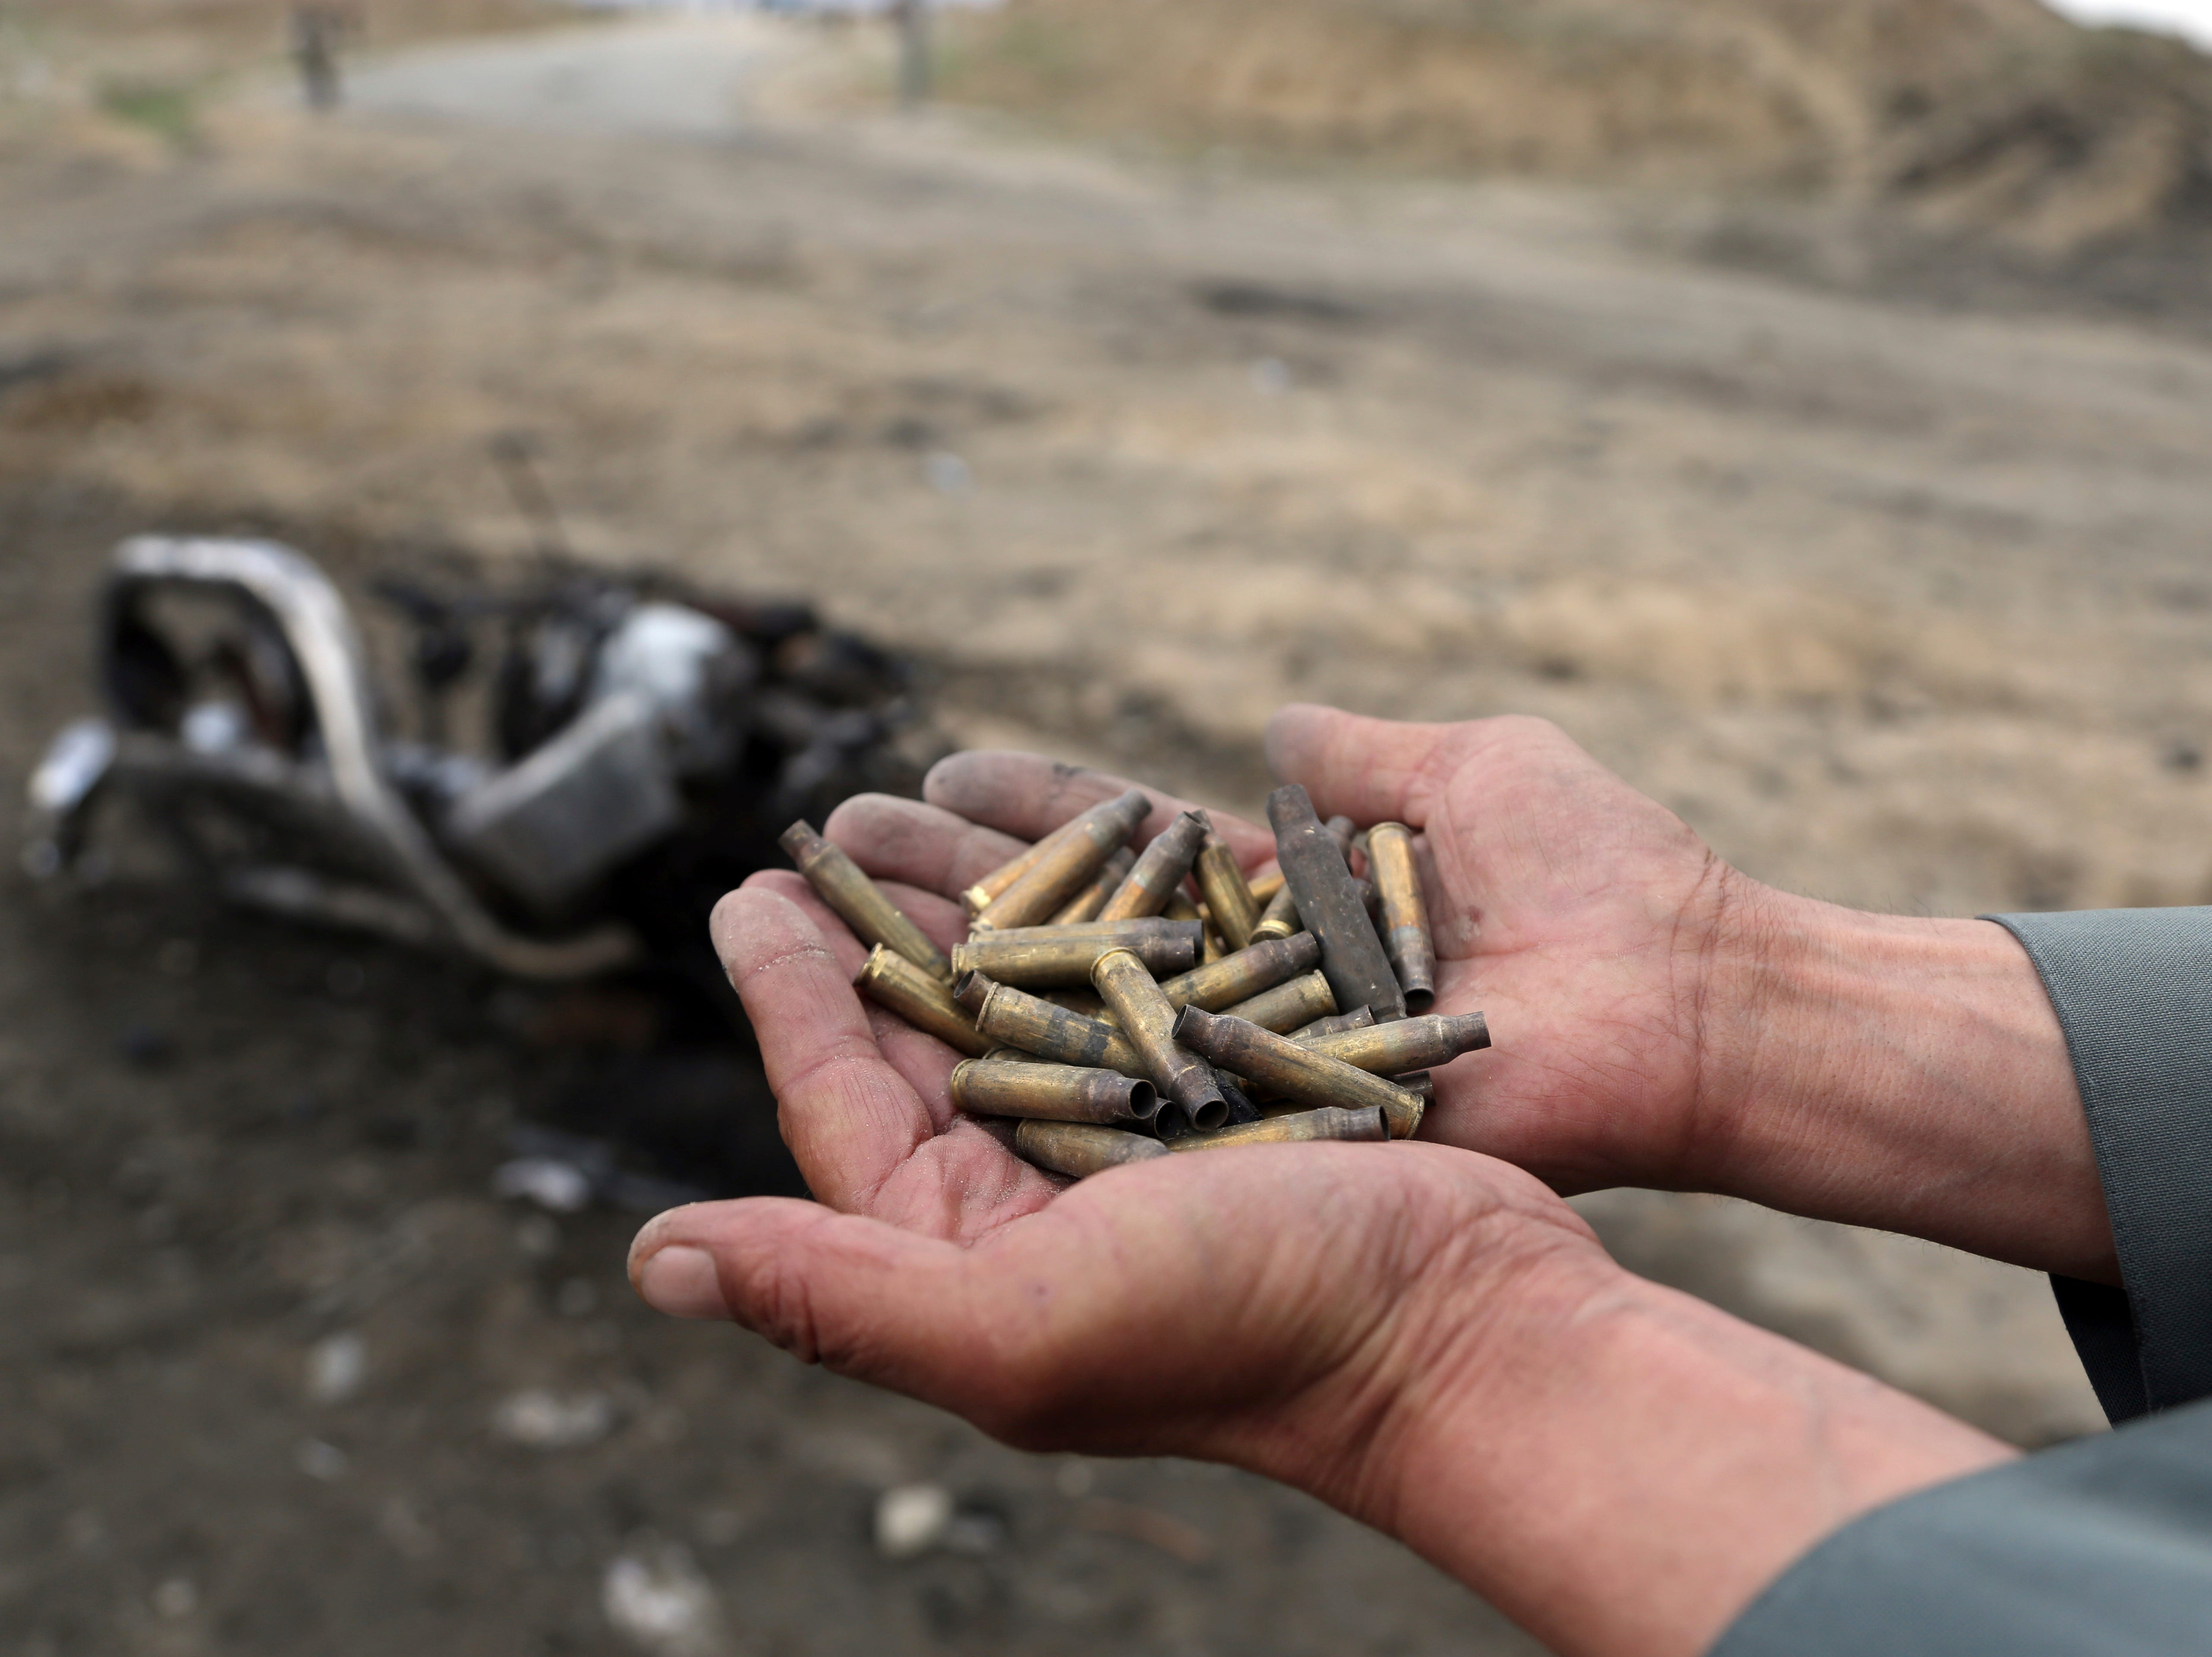 An Afghan security force hold bullet shell a day after an attack near the Bagram Air Base, north of Kabul, Afghanistan, Tuesday, April 9, 2019. Three American service members were killed when their convoy hit a roadside bomb on Monday near the main U.S. base in Afghanistan, the U.S. forces said. The Taliban claimed responsibility for the attack.